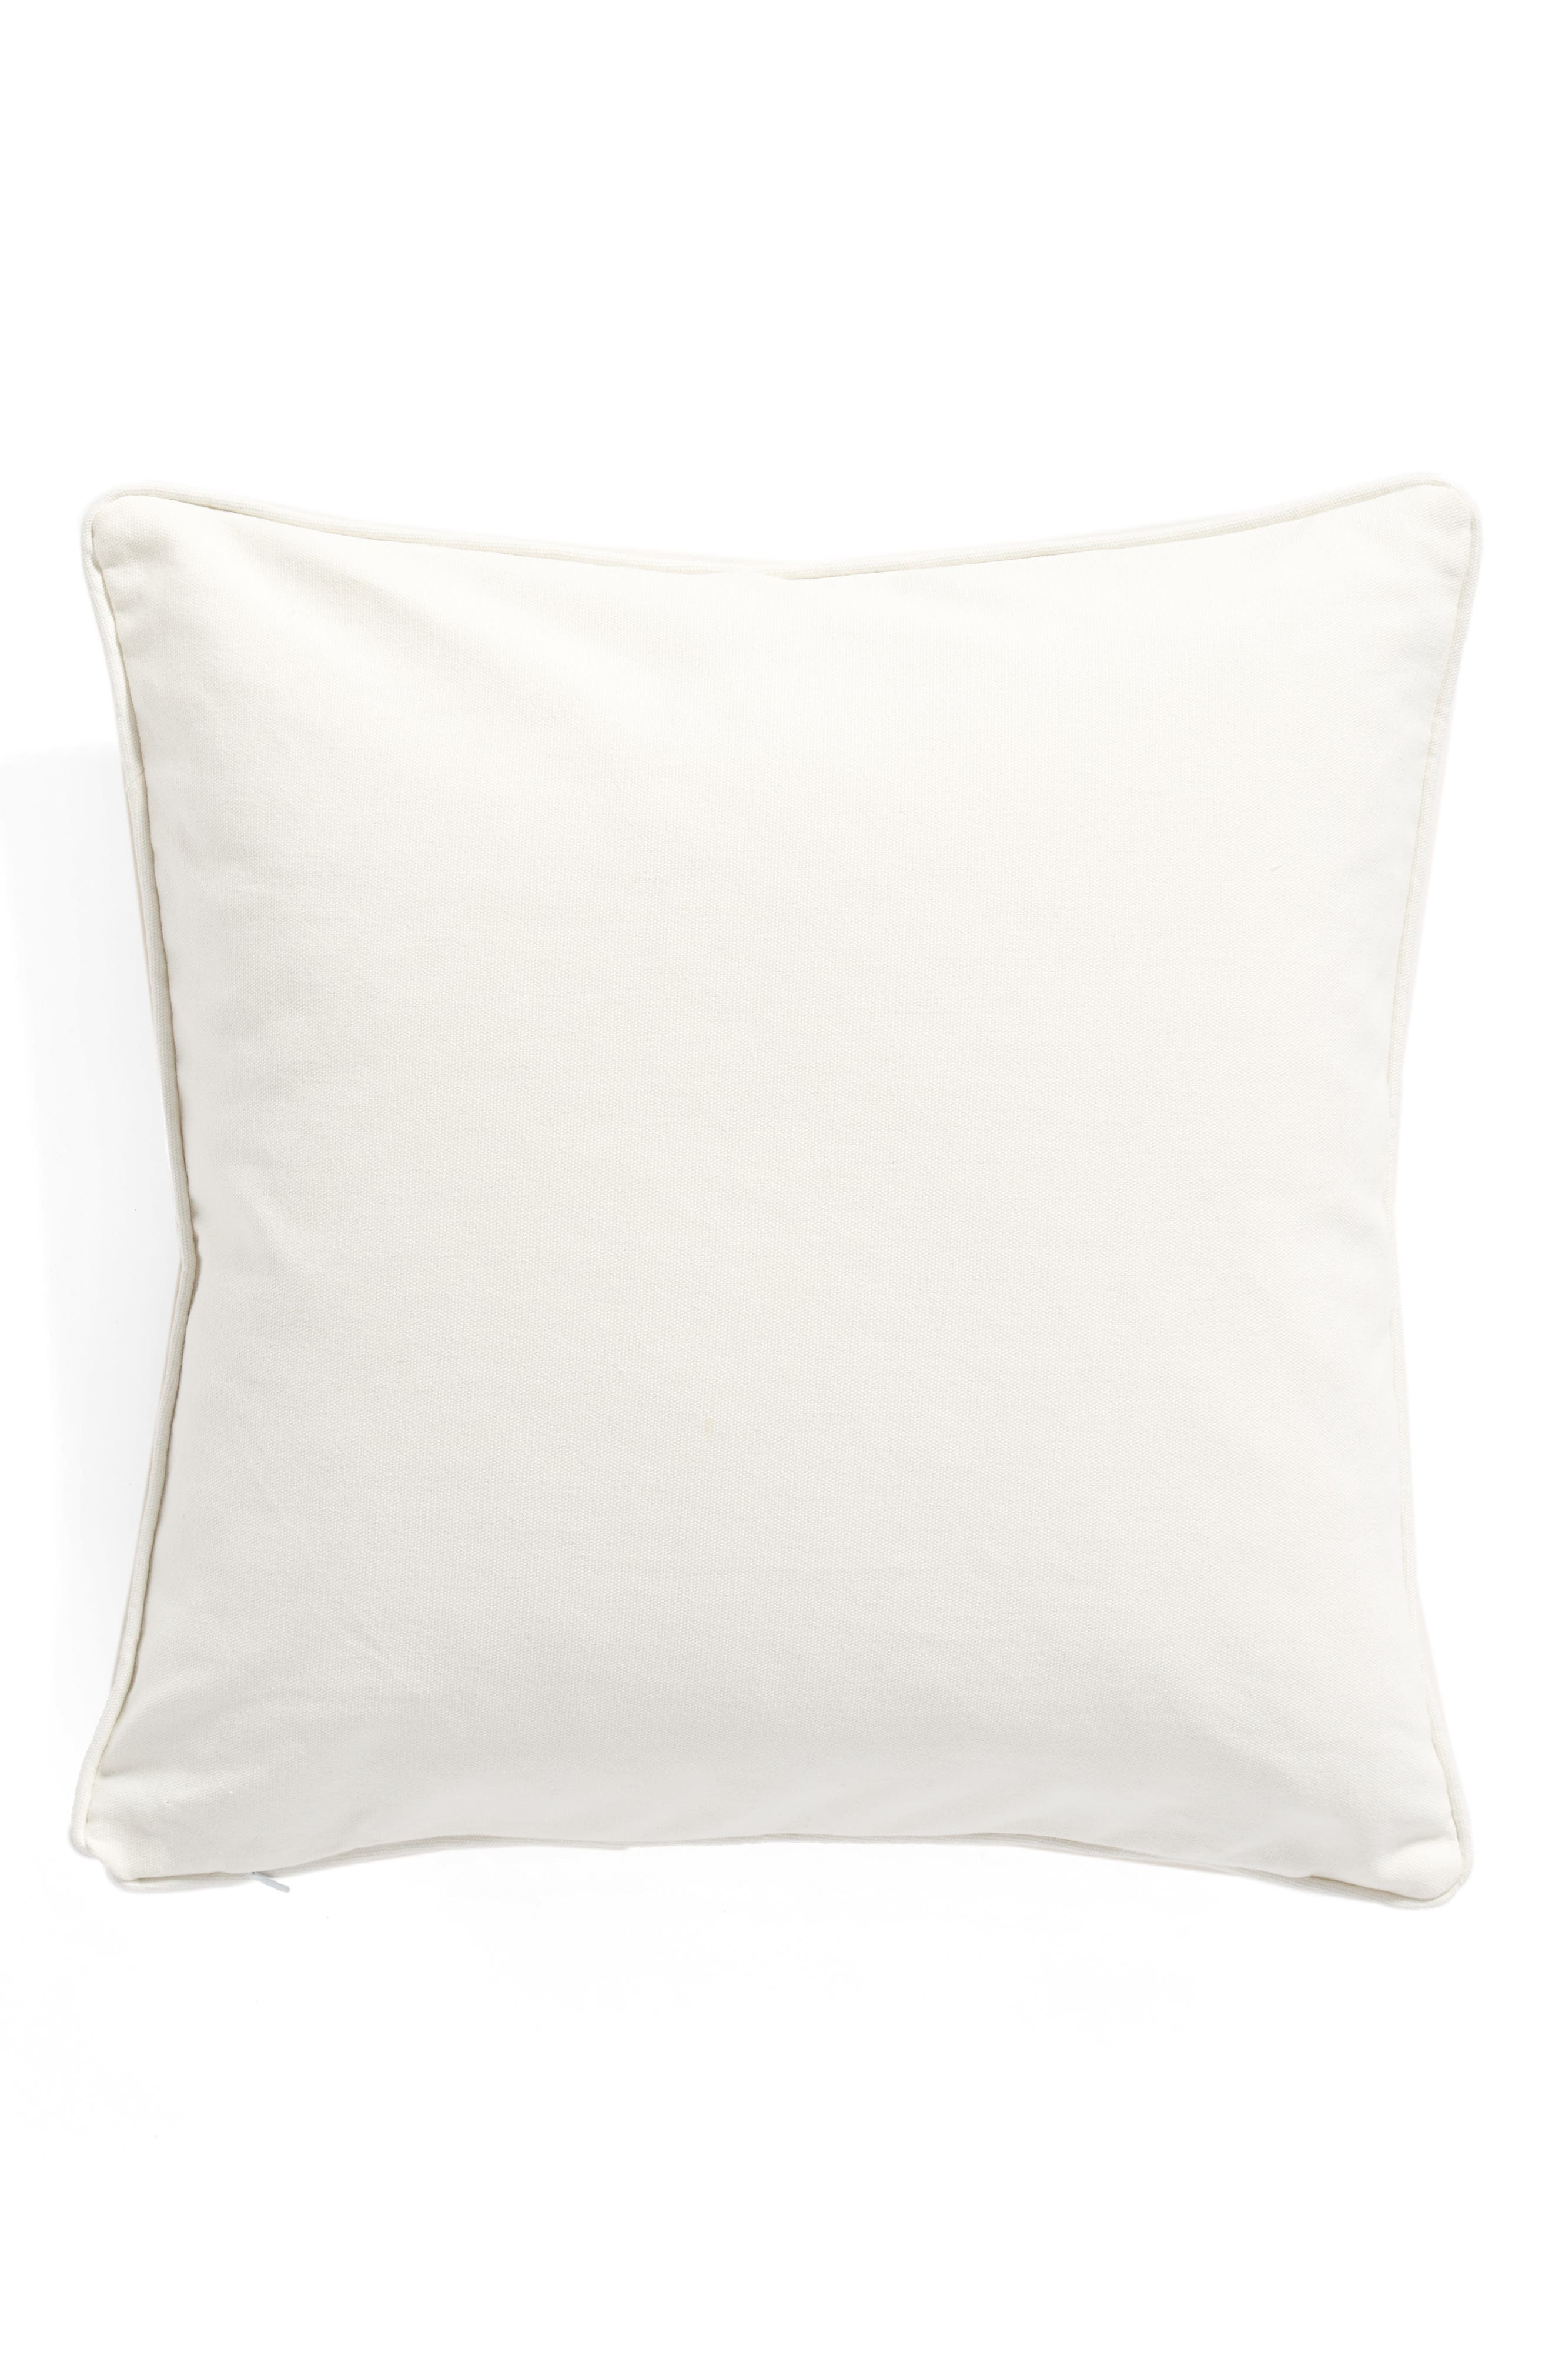 Don't Wake Me Just Go Go! Accent Pillow,                             Alternate thumbnail 2, color,                             Gold